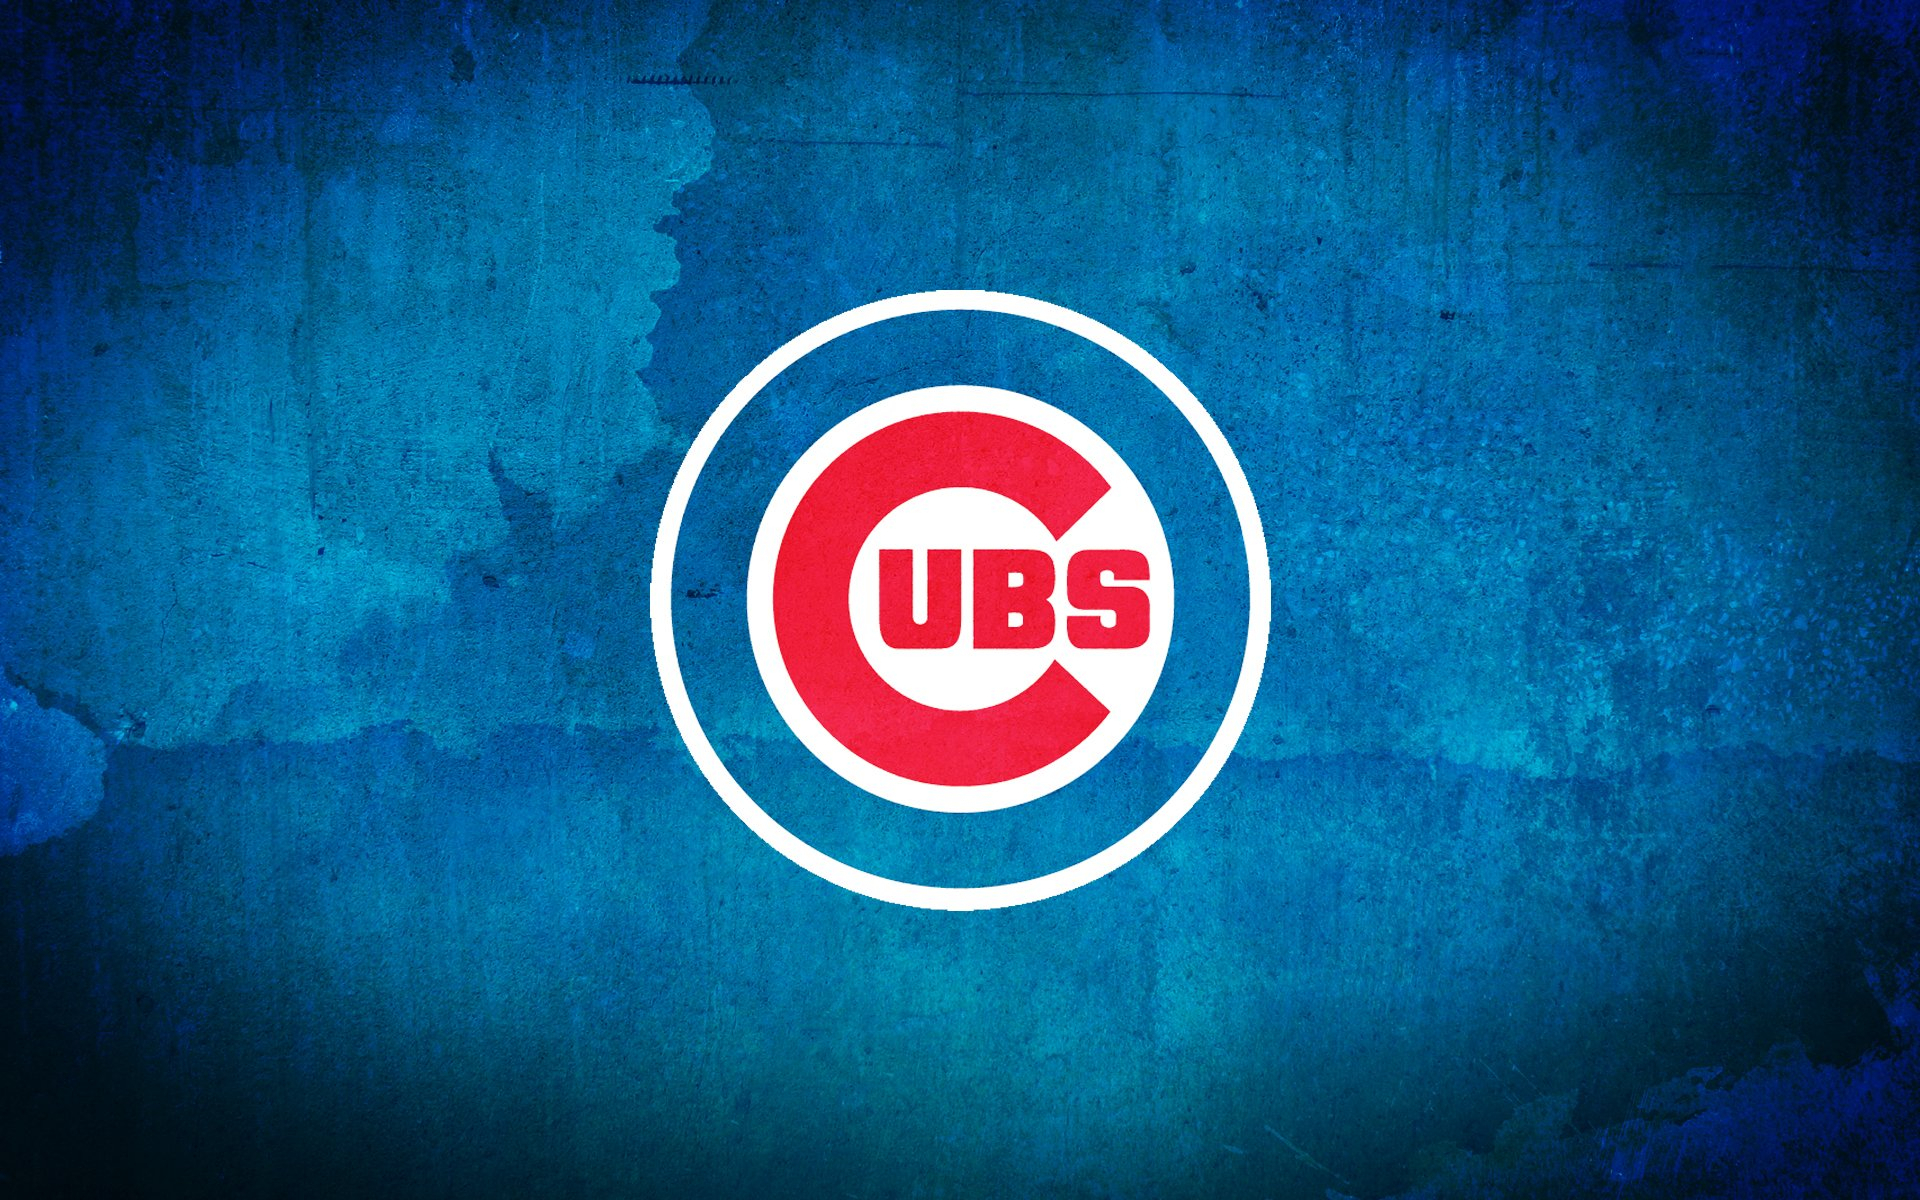 15 chicago cubs hd wallpapers | background images - wallpaper abyss